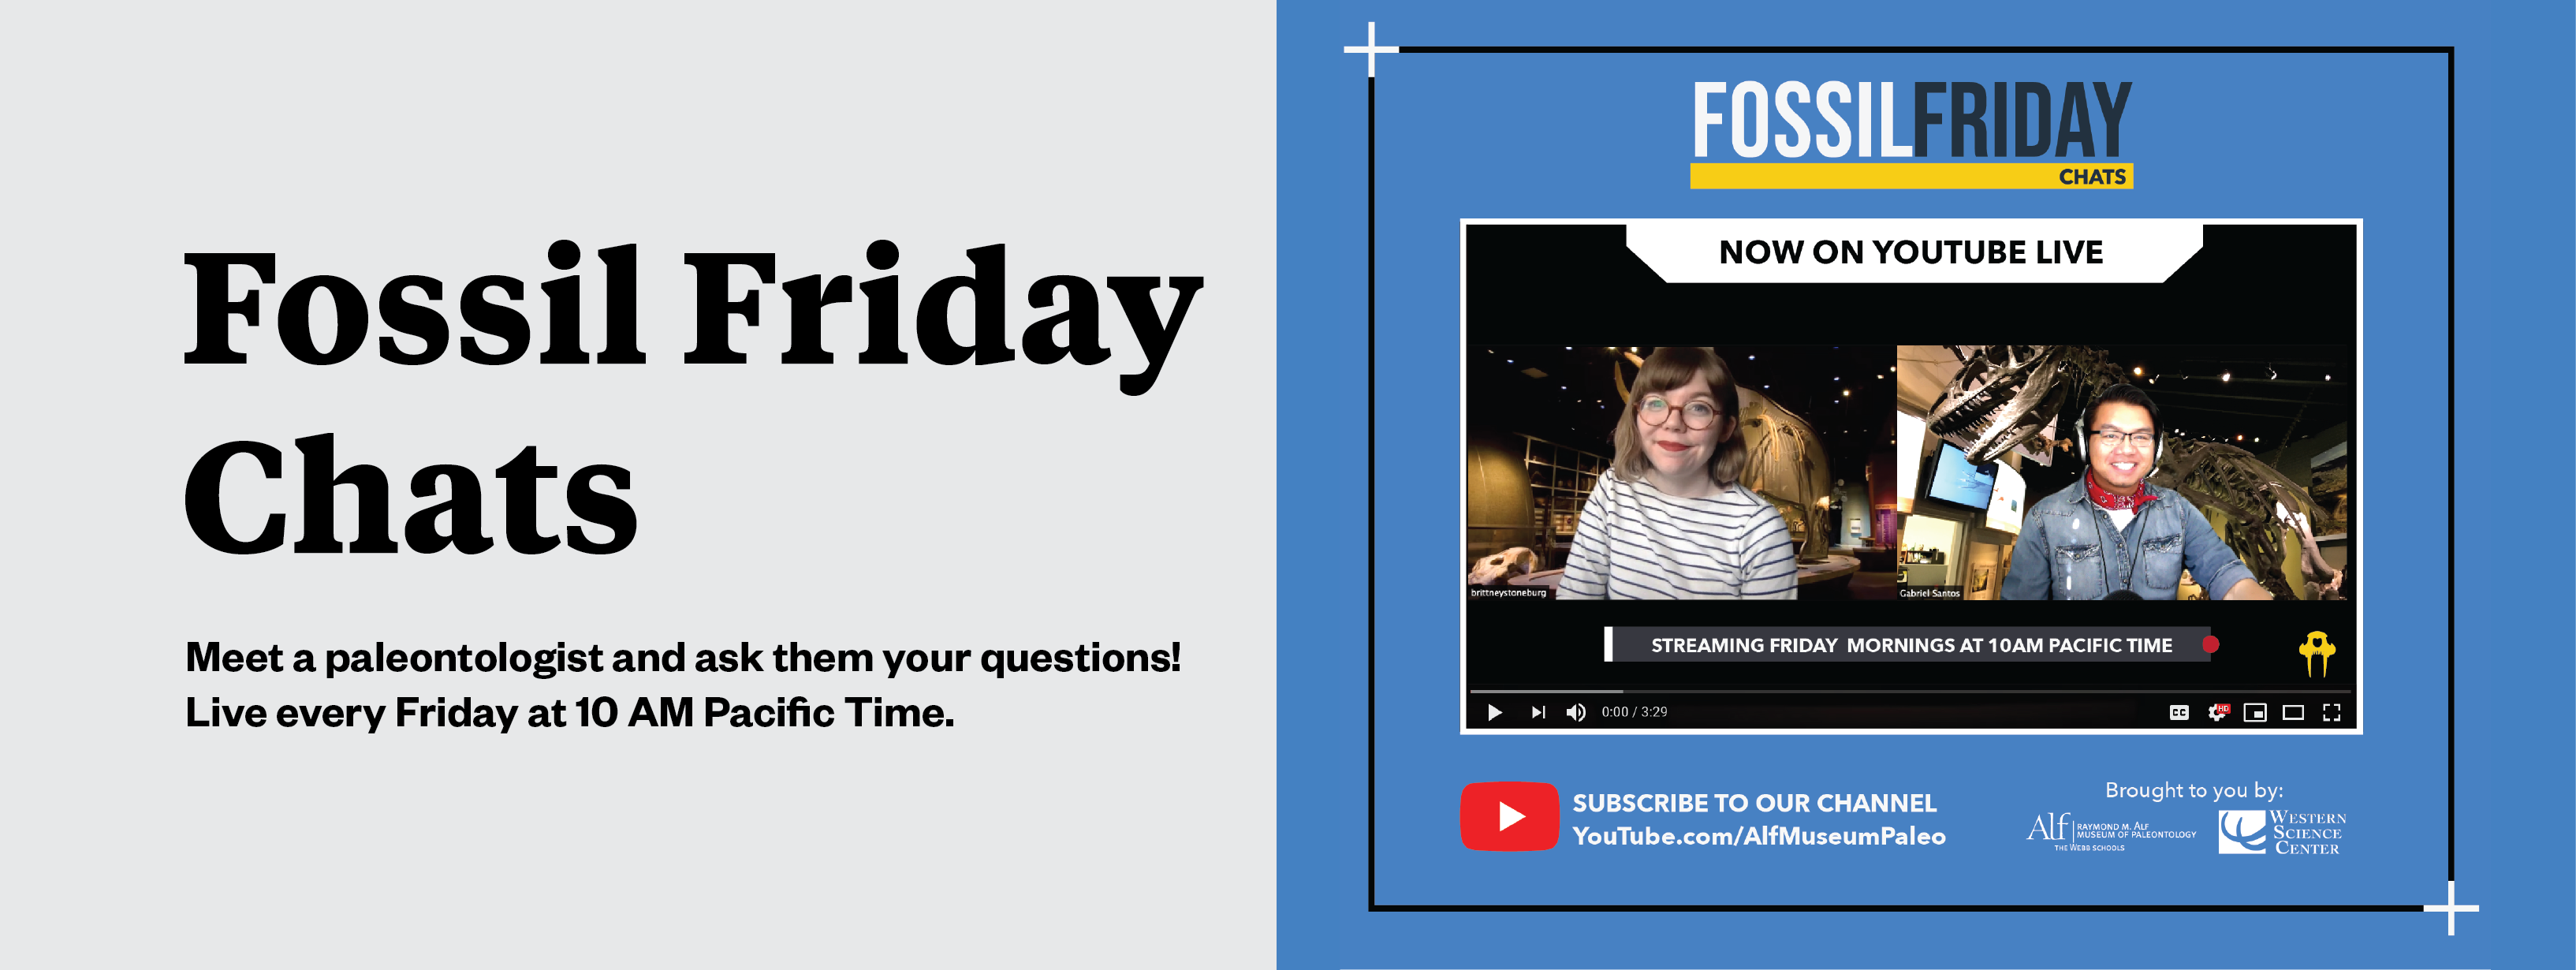 Graphic with a blue background and image of two paleontologists, a young Caucasian women and a young Filipino man, next to each other in a YouTube window. Text reads: Fossil Friday Chats, meet paleontologists and ask them your questions every Friday at 10am Pacific Time.